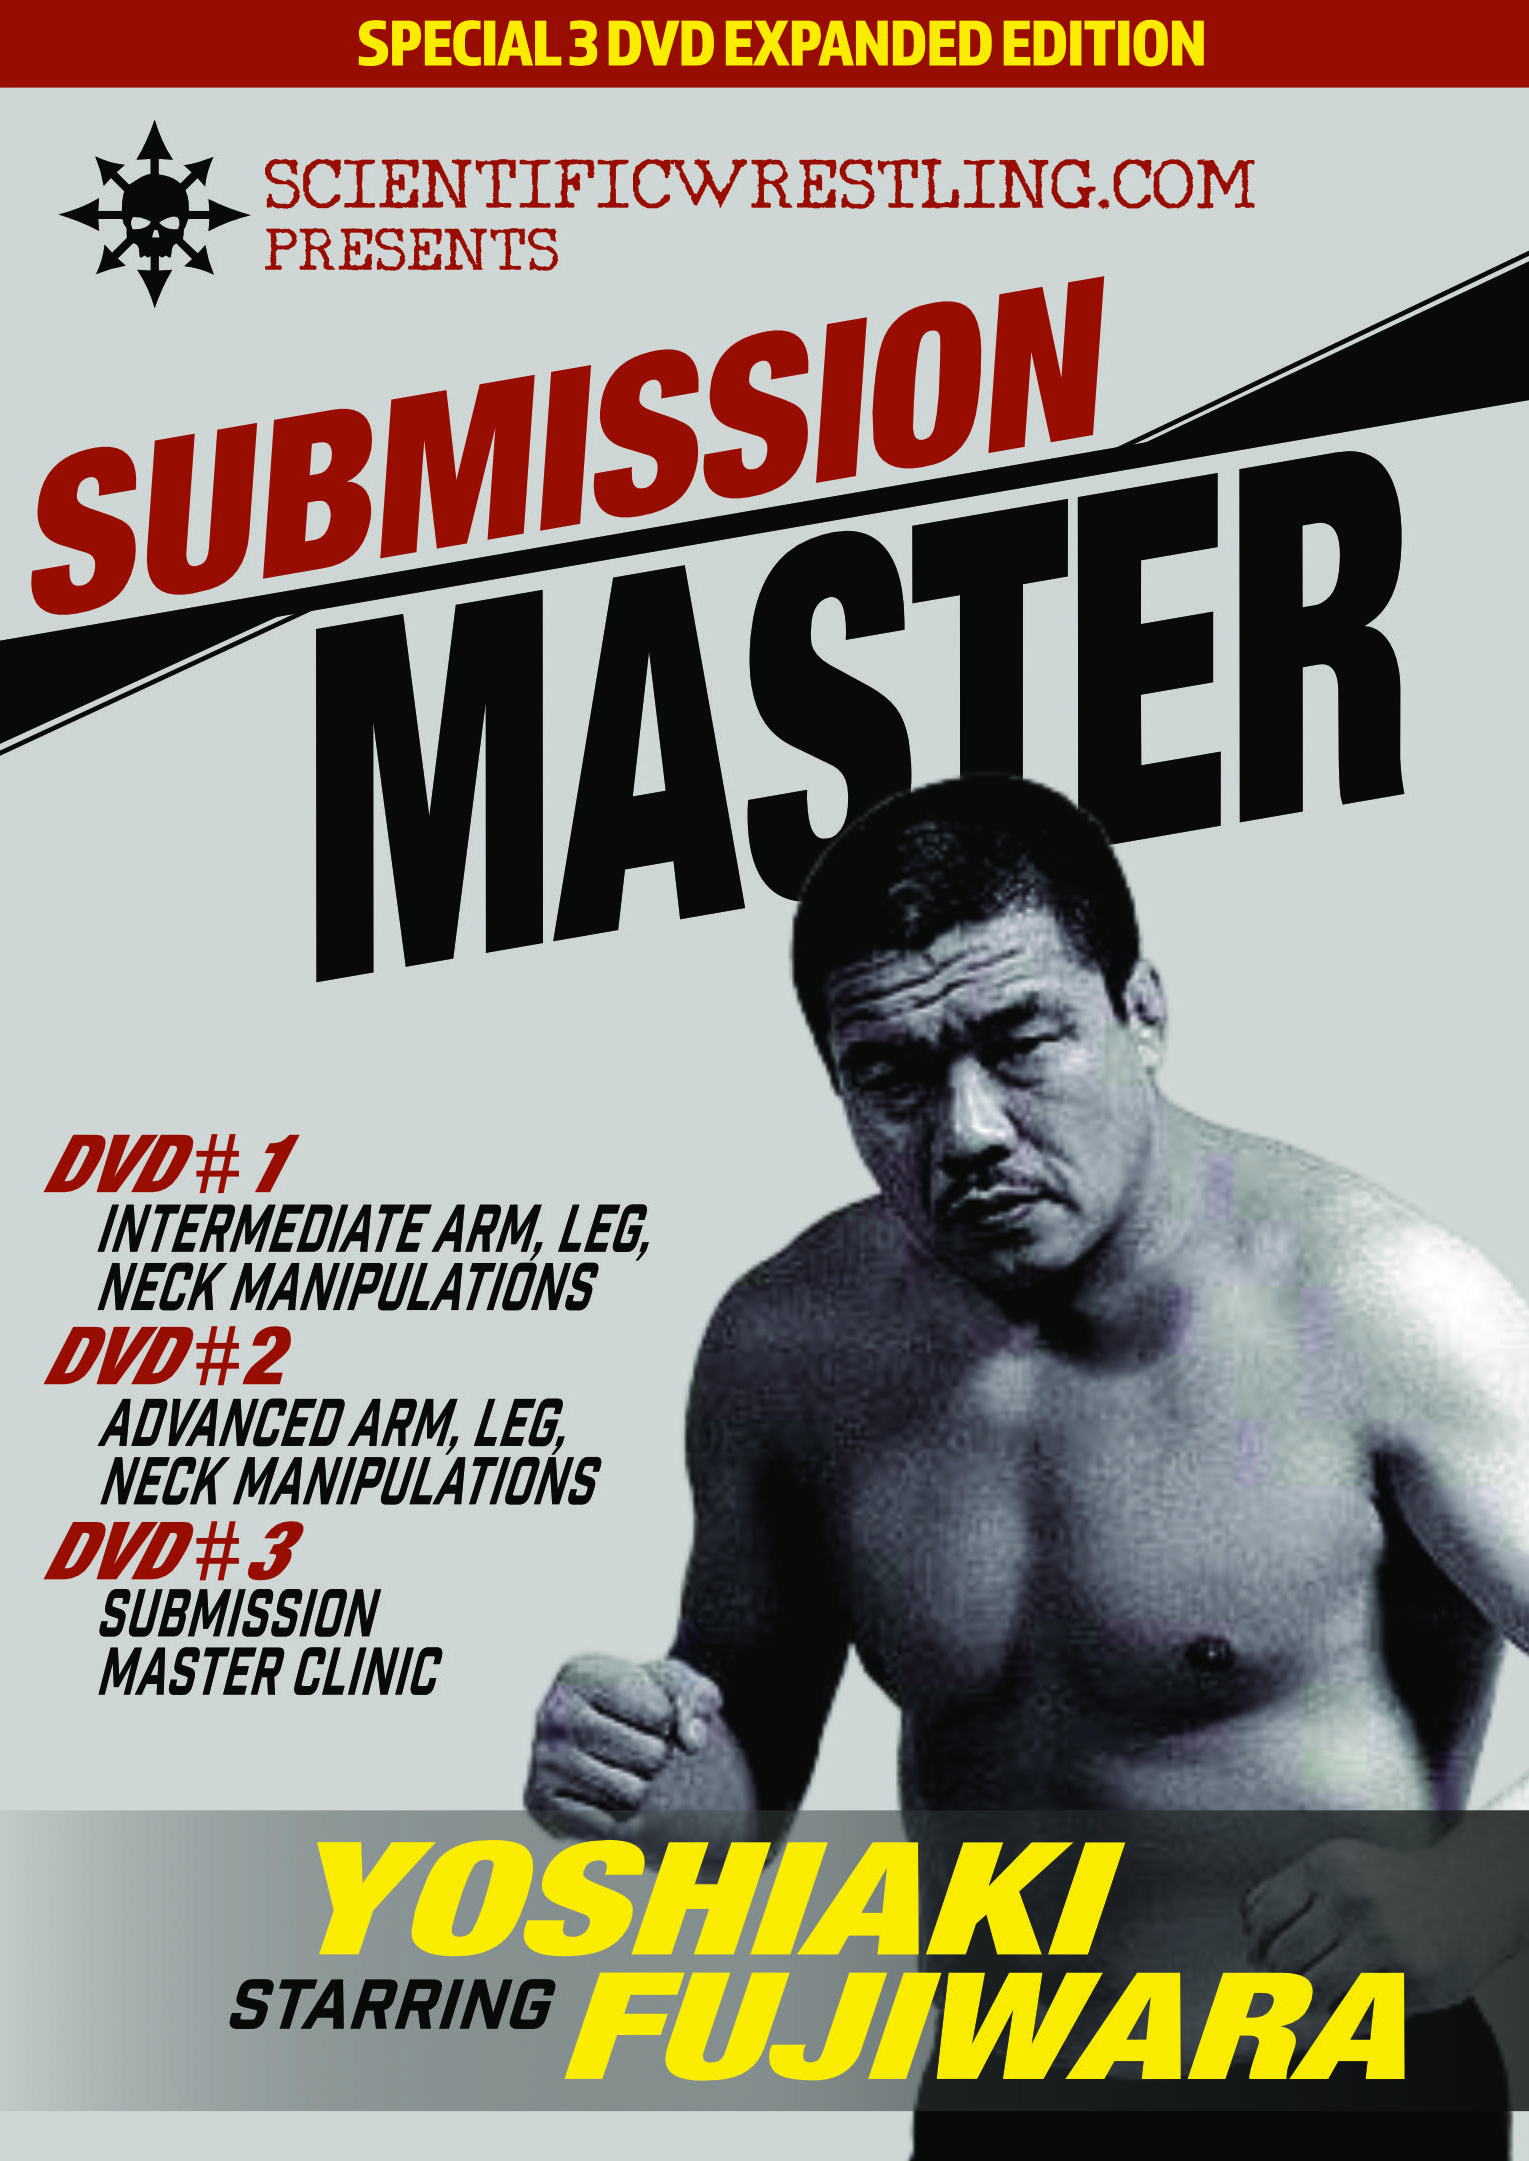 Fujiwaras Sub-Mission Master Expanded Deluxe 3 DVD set